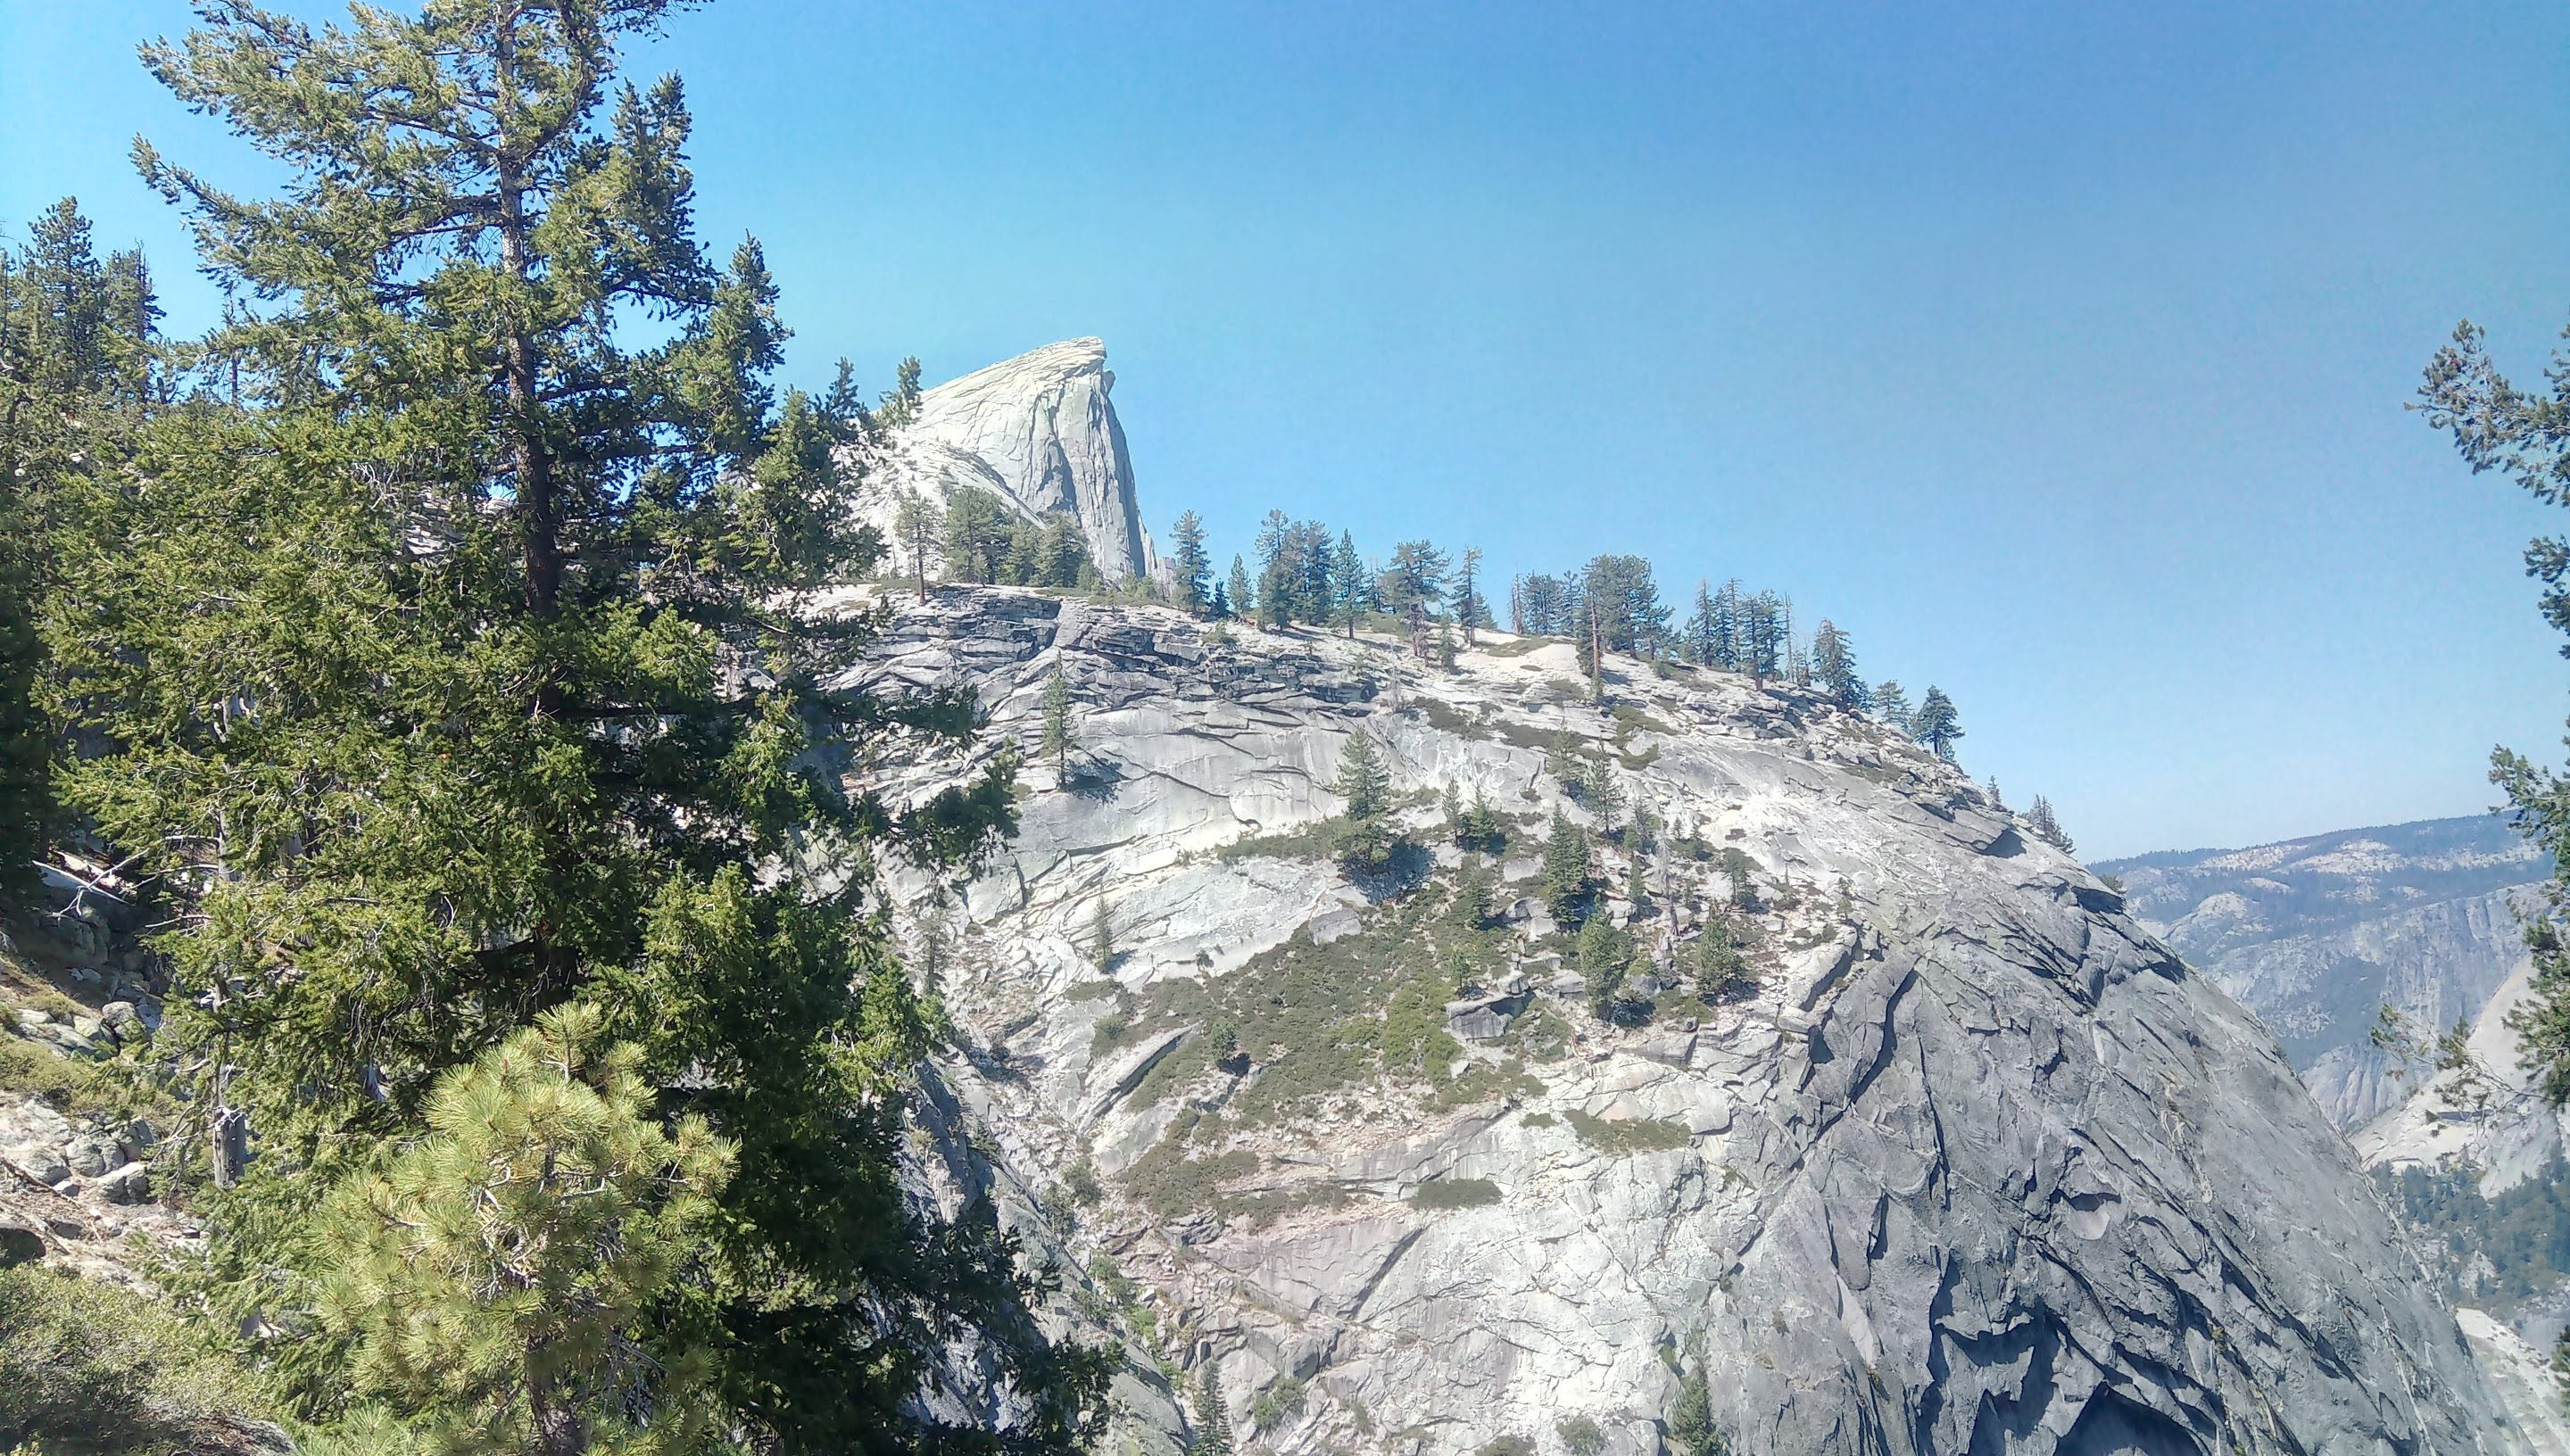 First glimpse of Half Dome